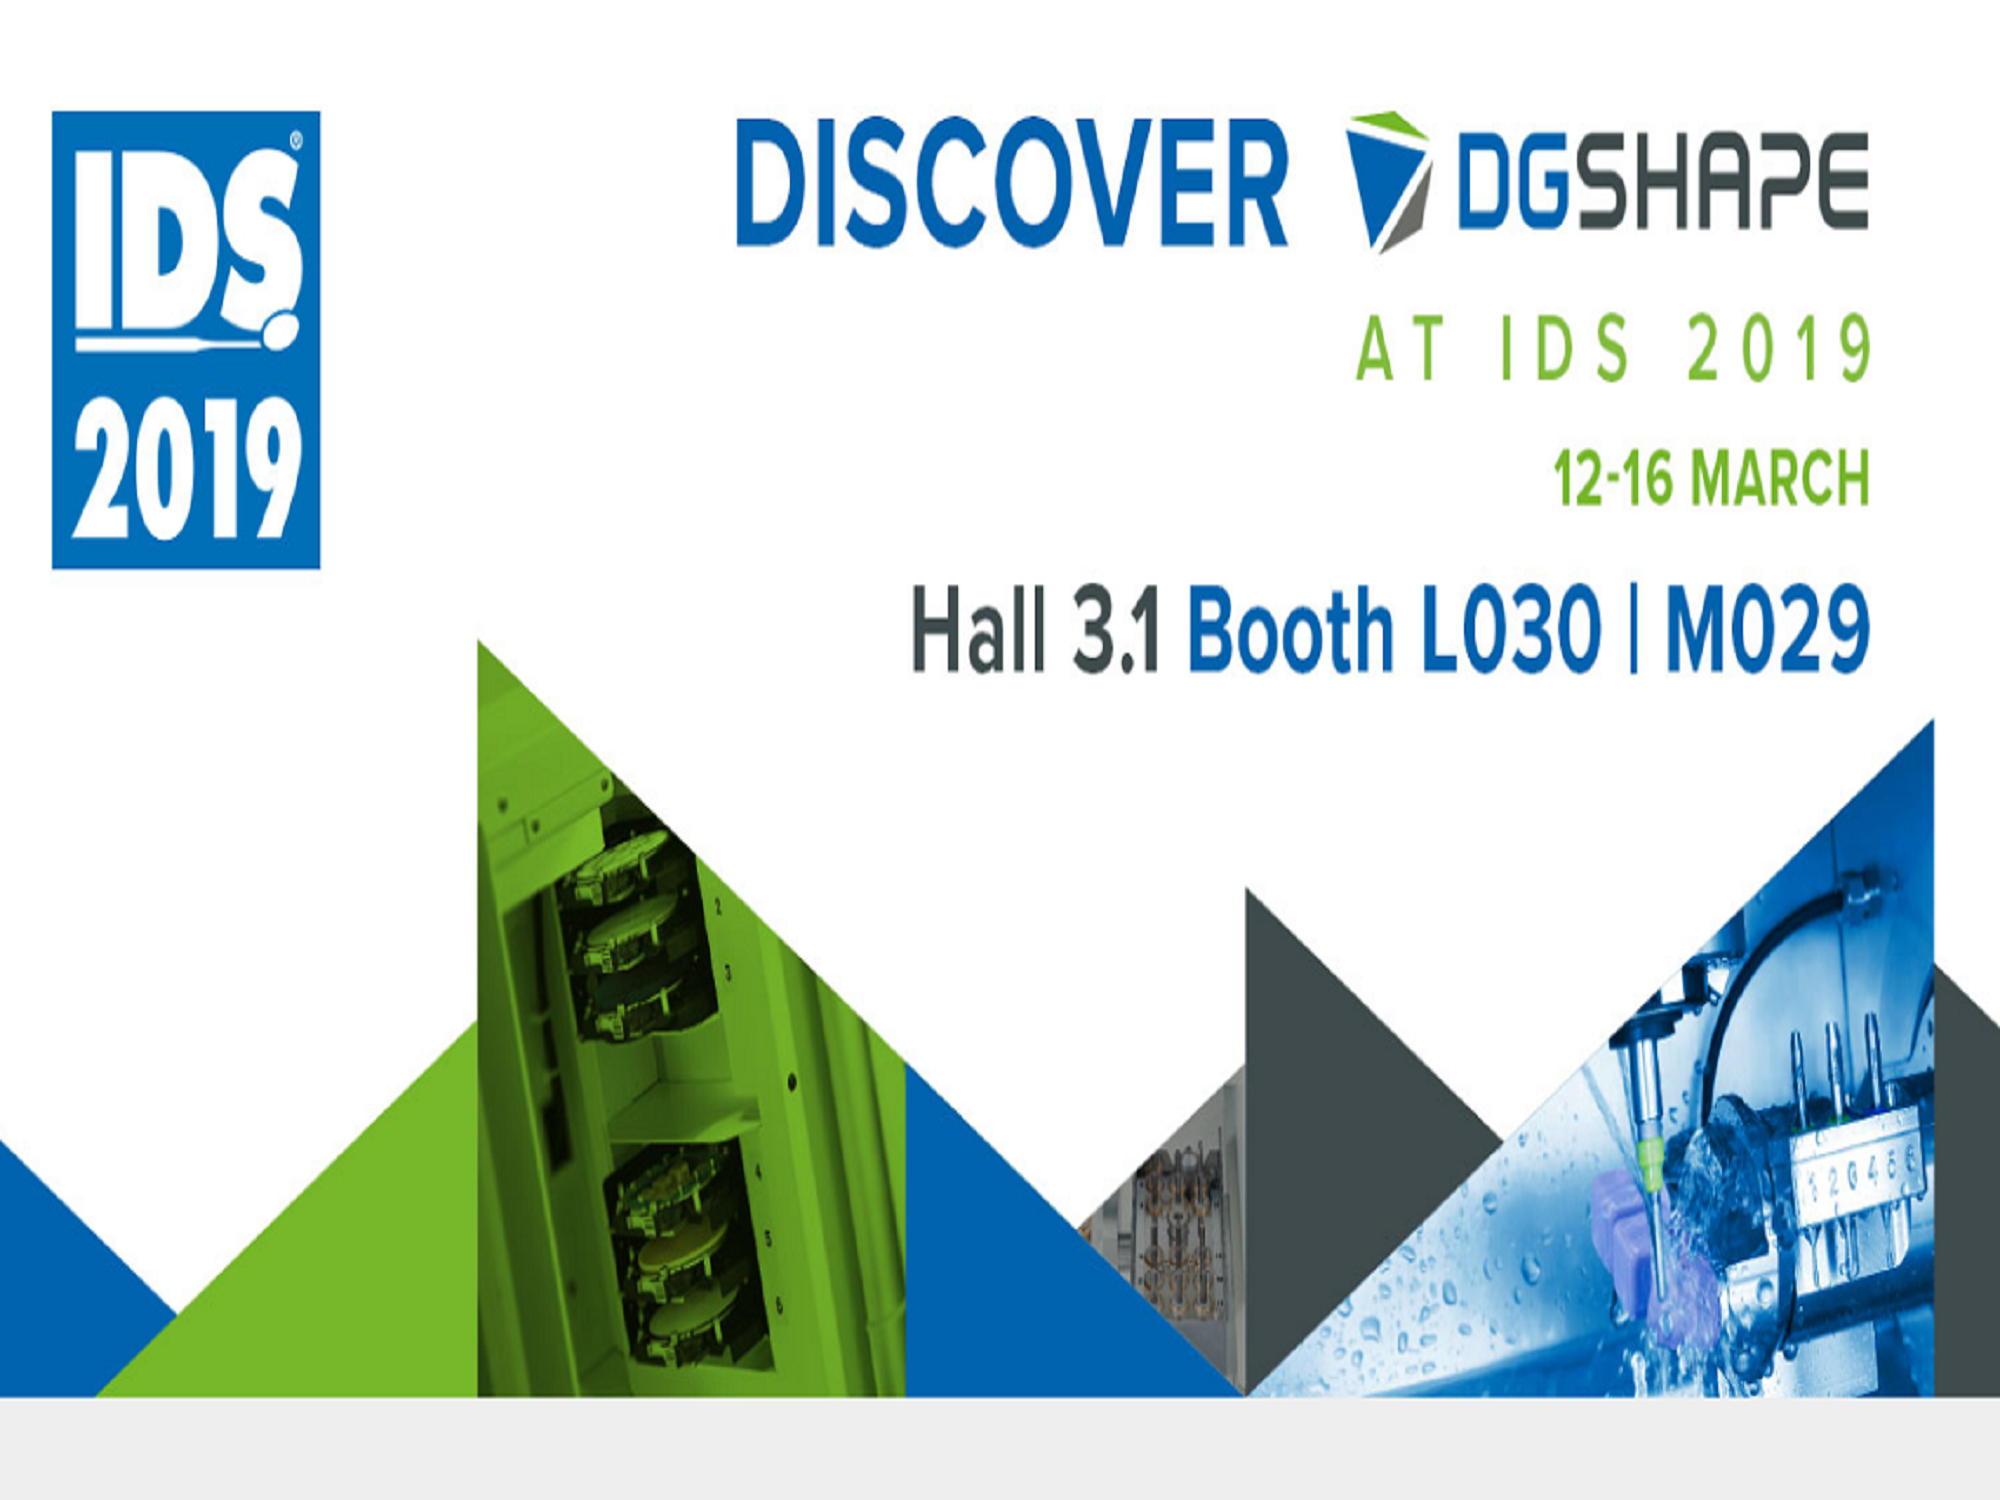 Visit DGSHAPE at IDS 2019